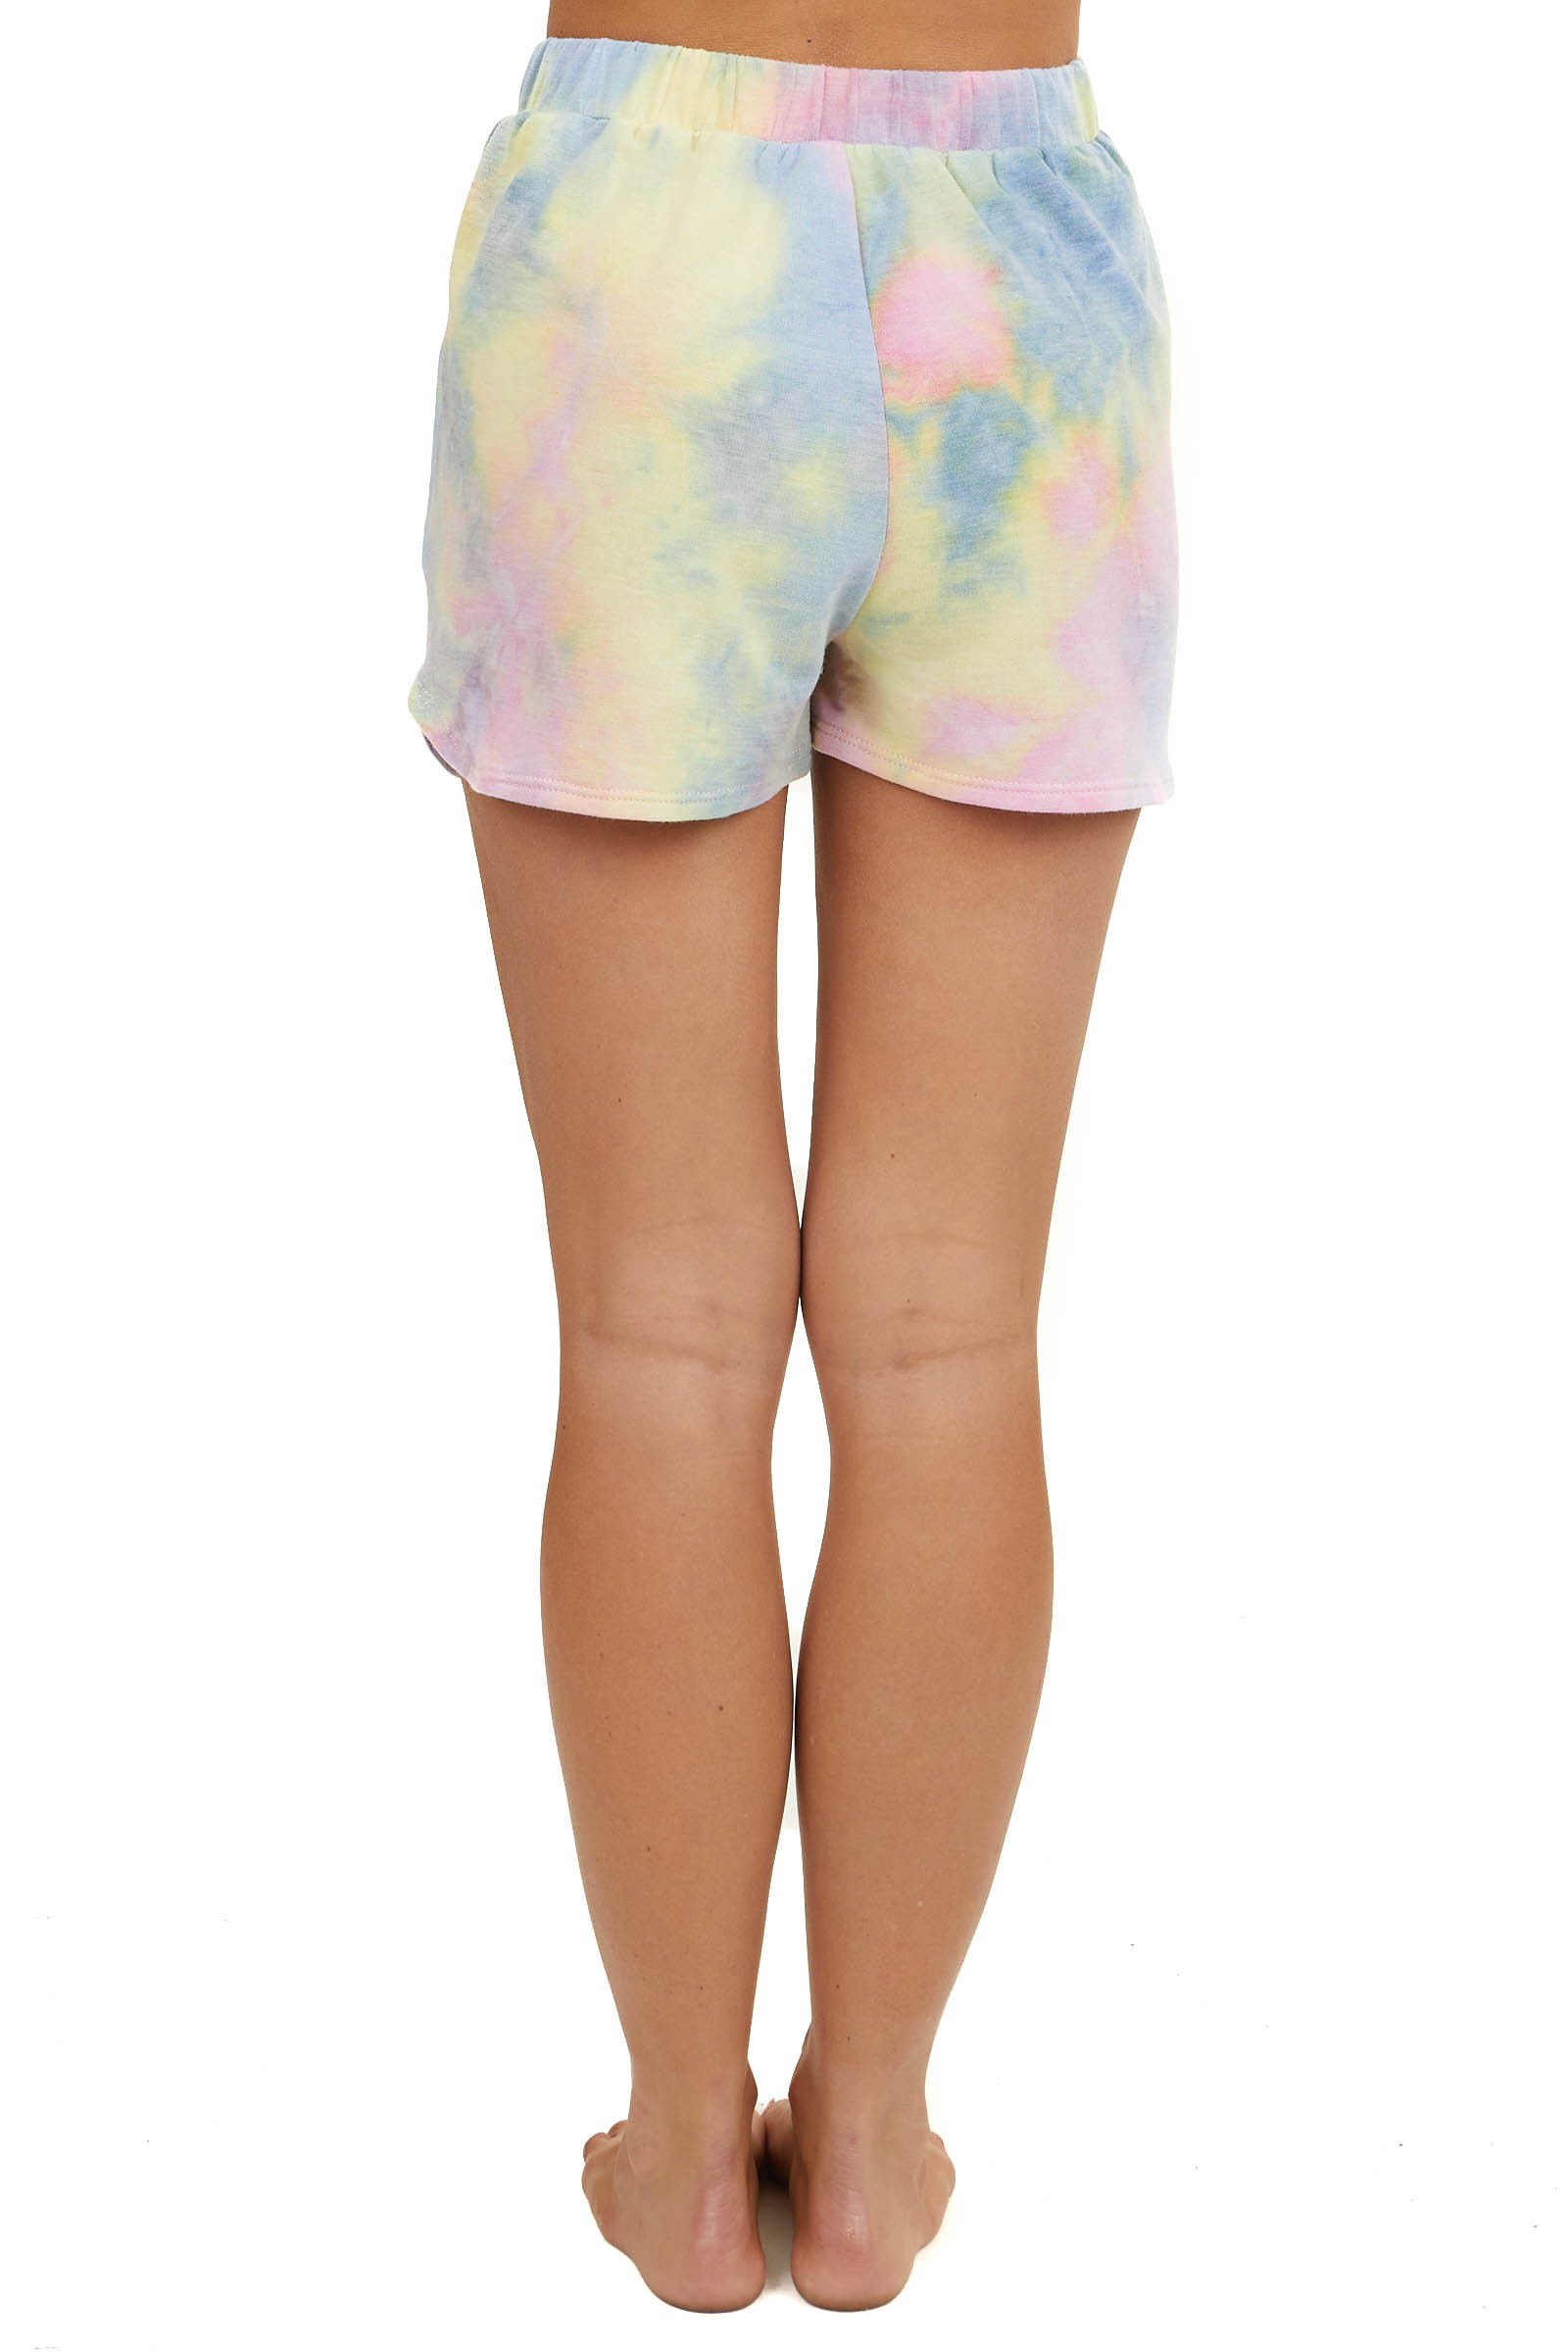 Dusty Multicolor Tie Dye Drawstring Shorts with Pockets